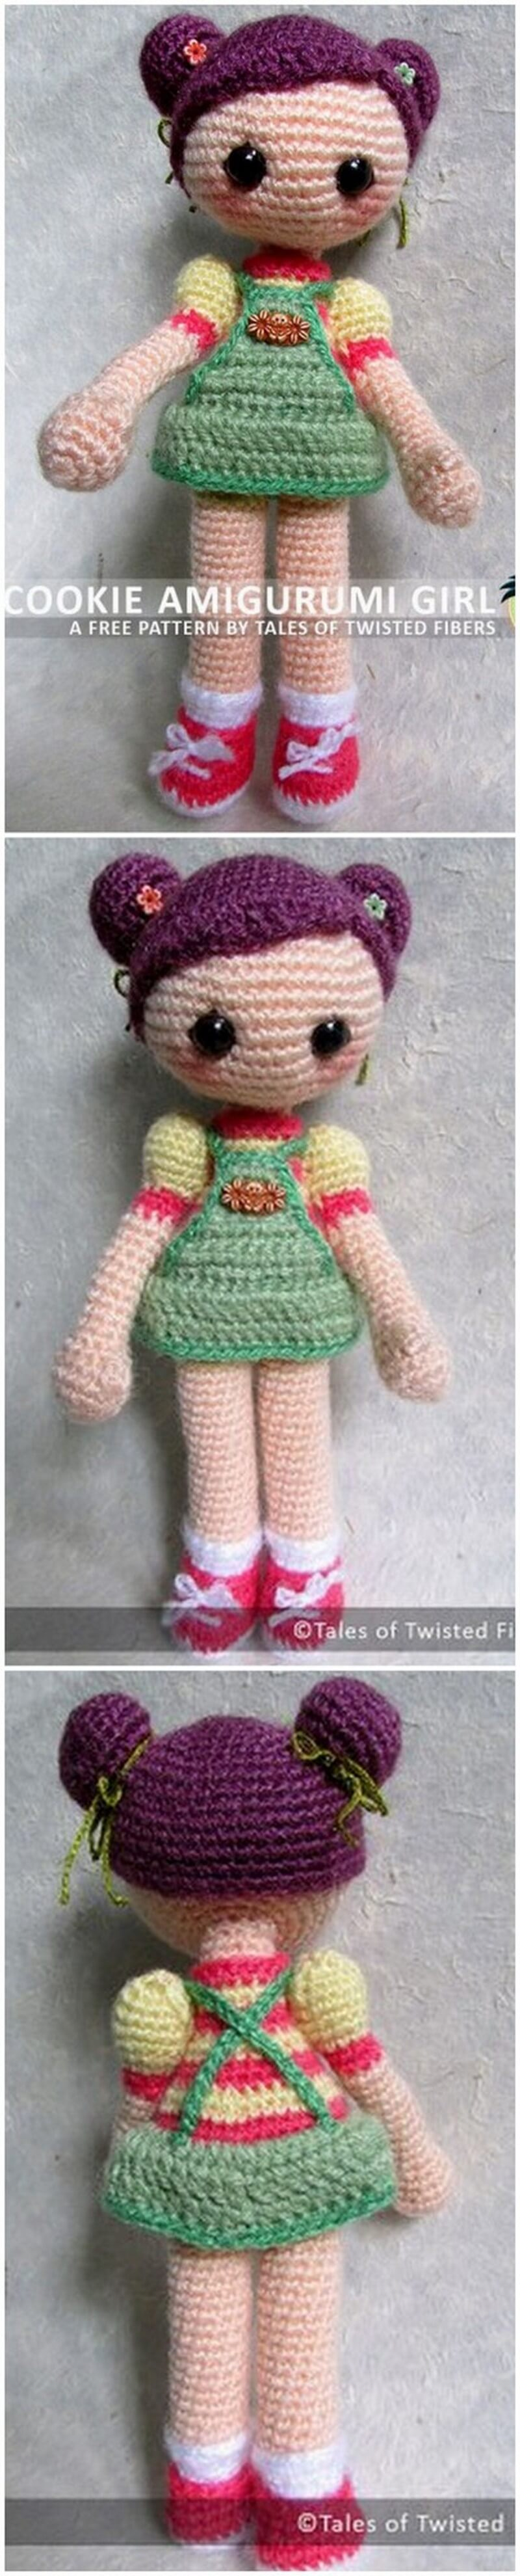 Crochet Amigurumi Doll Pattern (46)